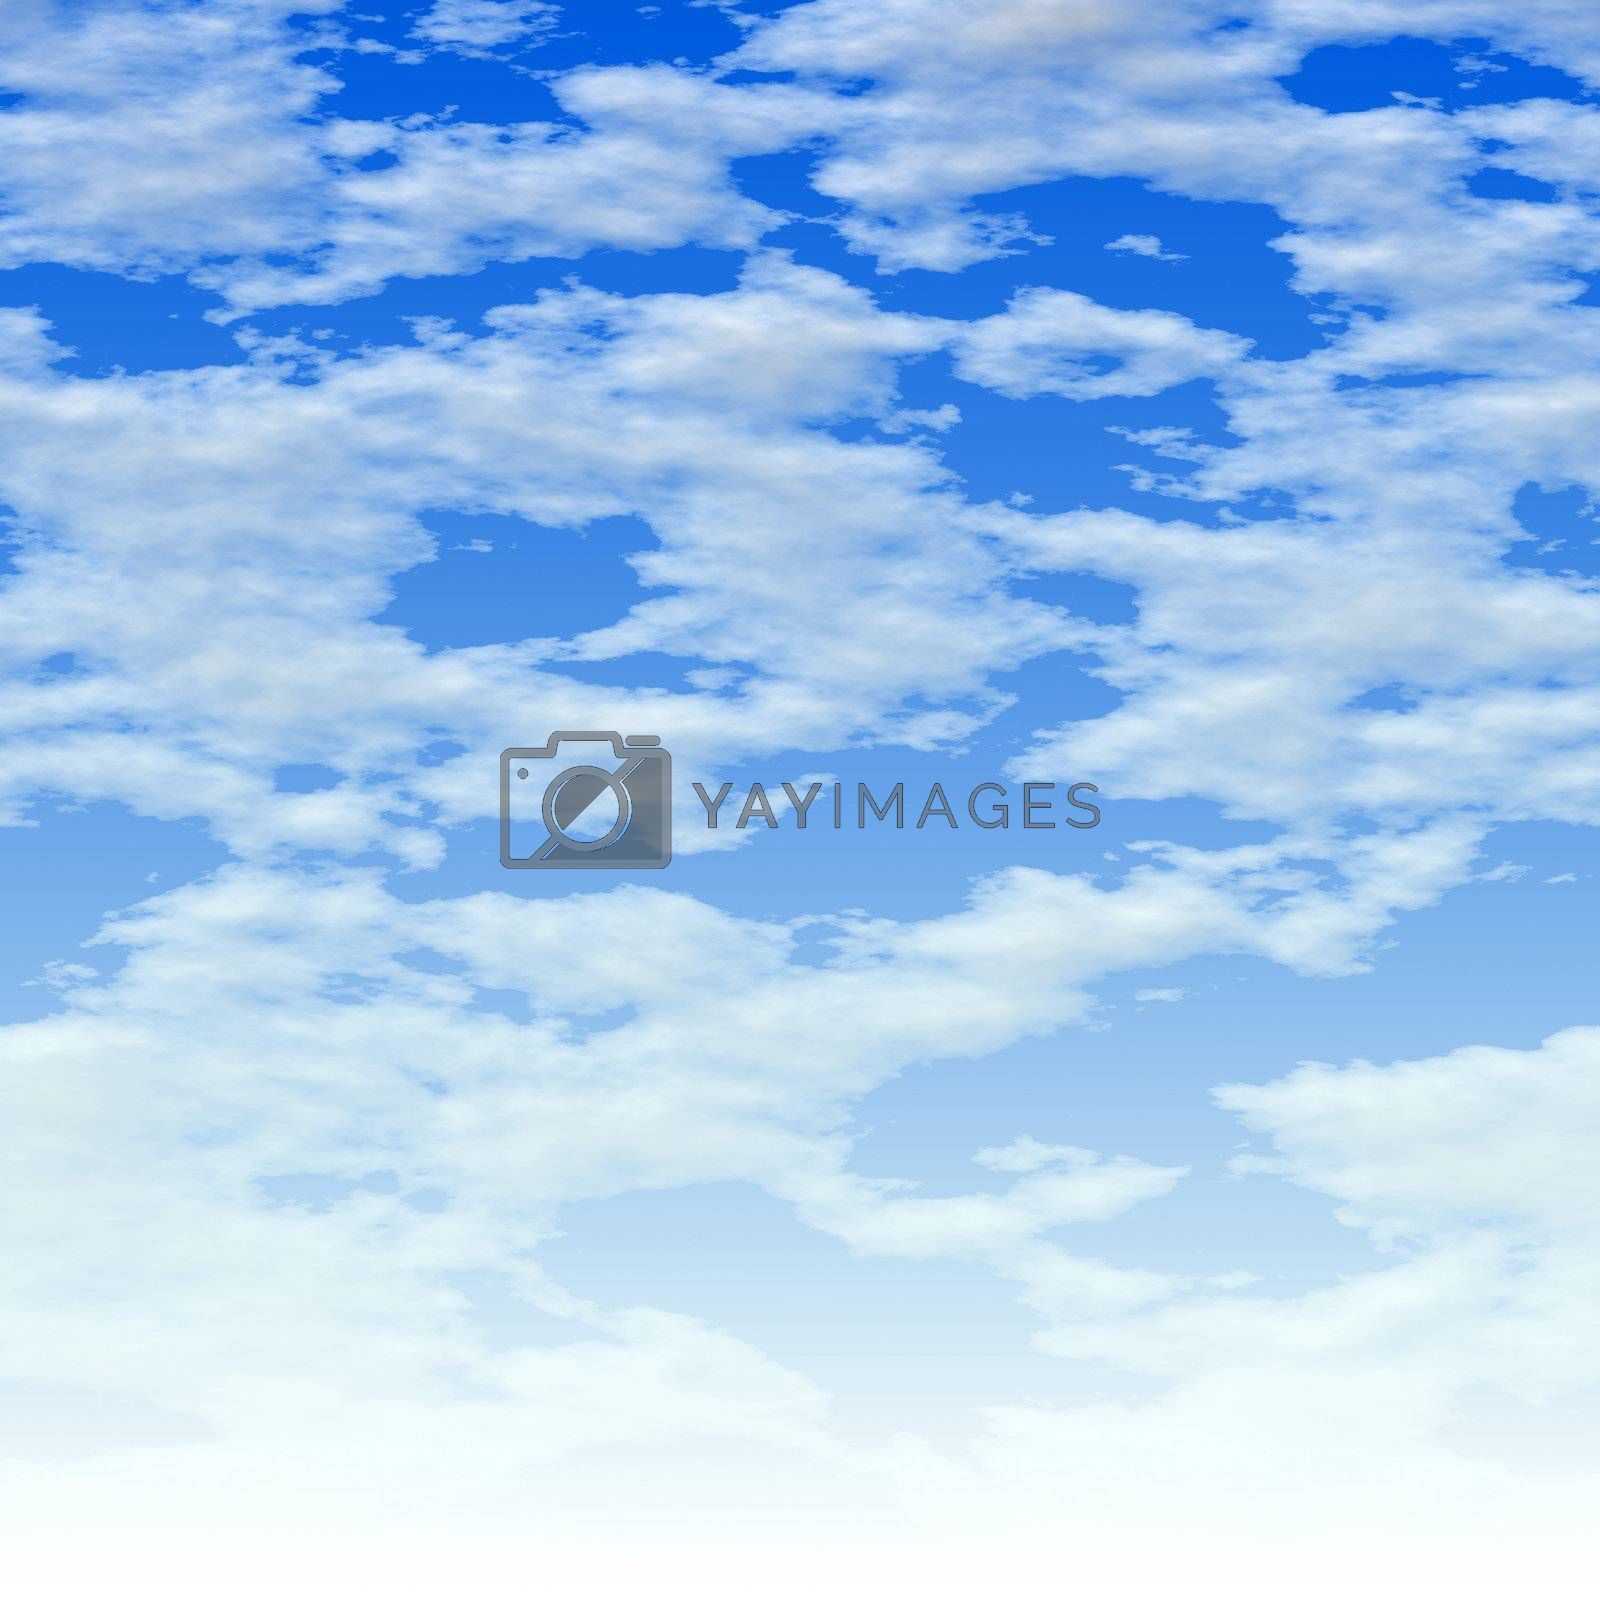 Here is a simple clouds background - it fades to white at the bottom.  This tiles seamlessly from side to side.